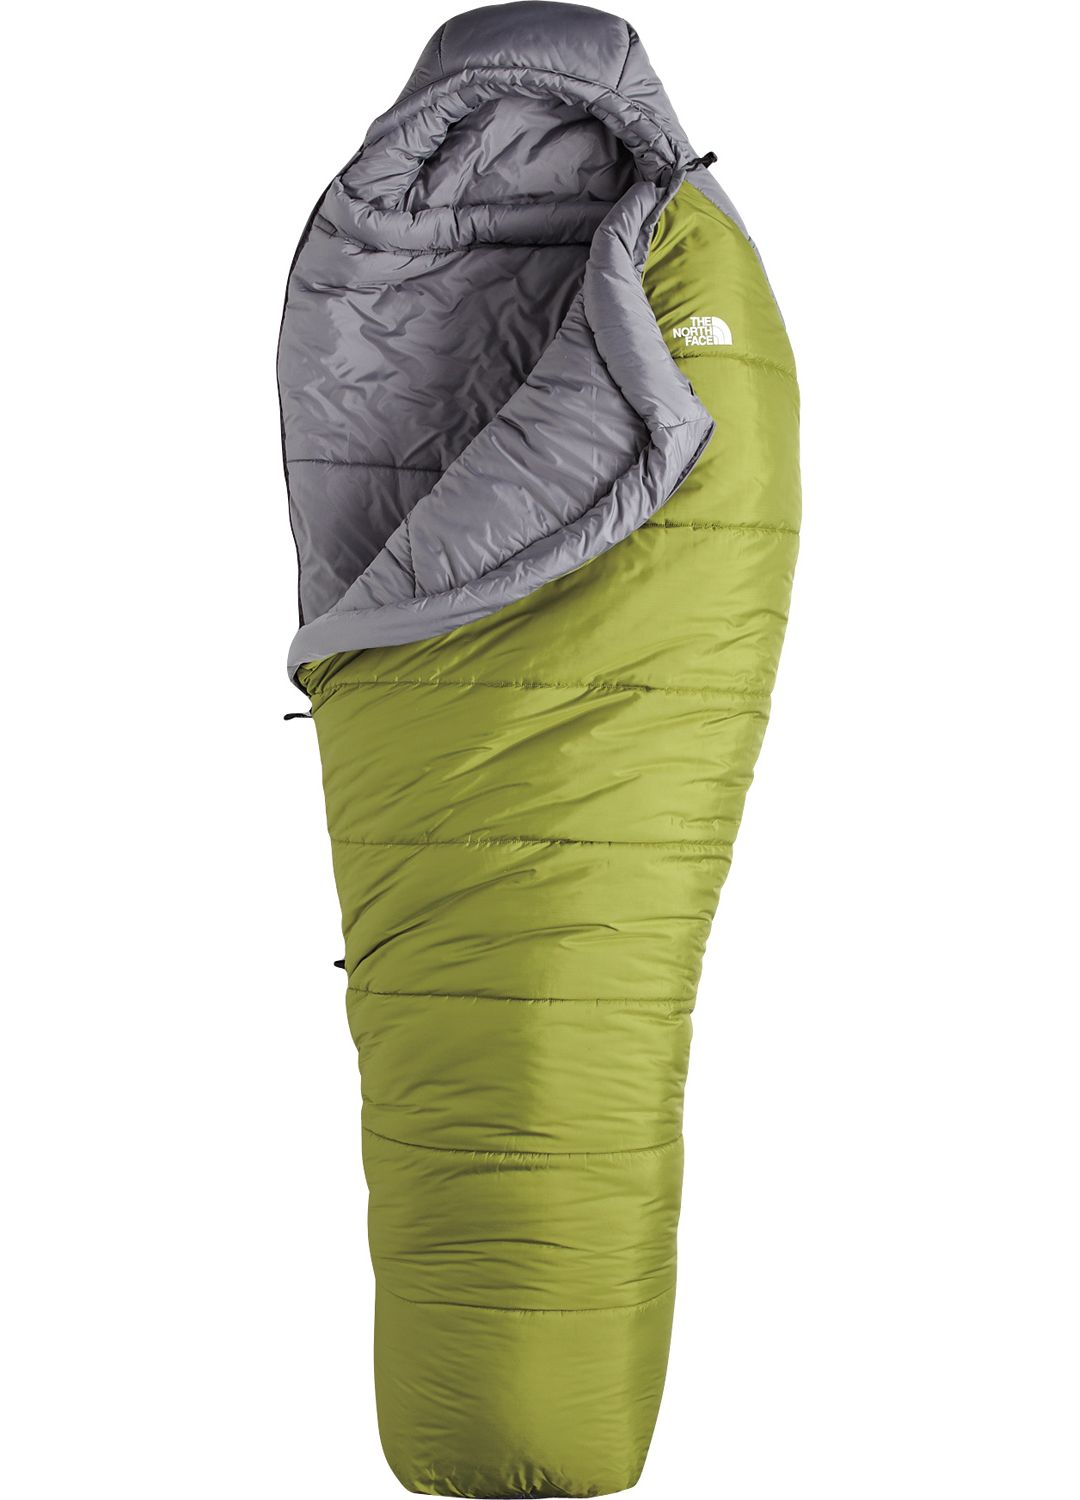 The North Face Wasatch 0 Sleeping Bag